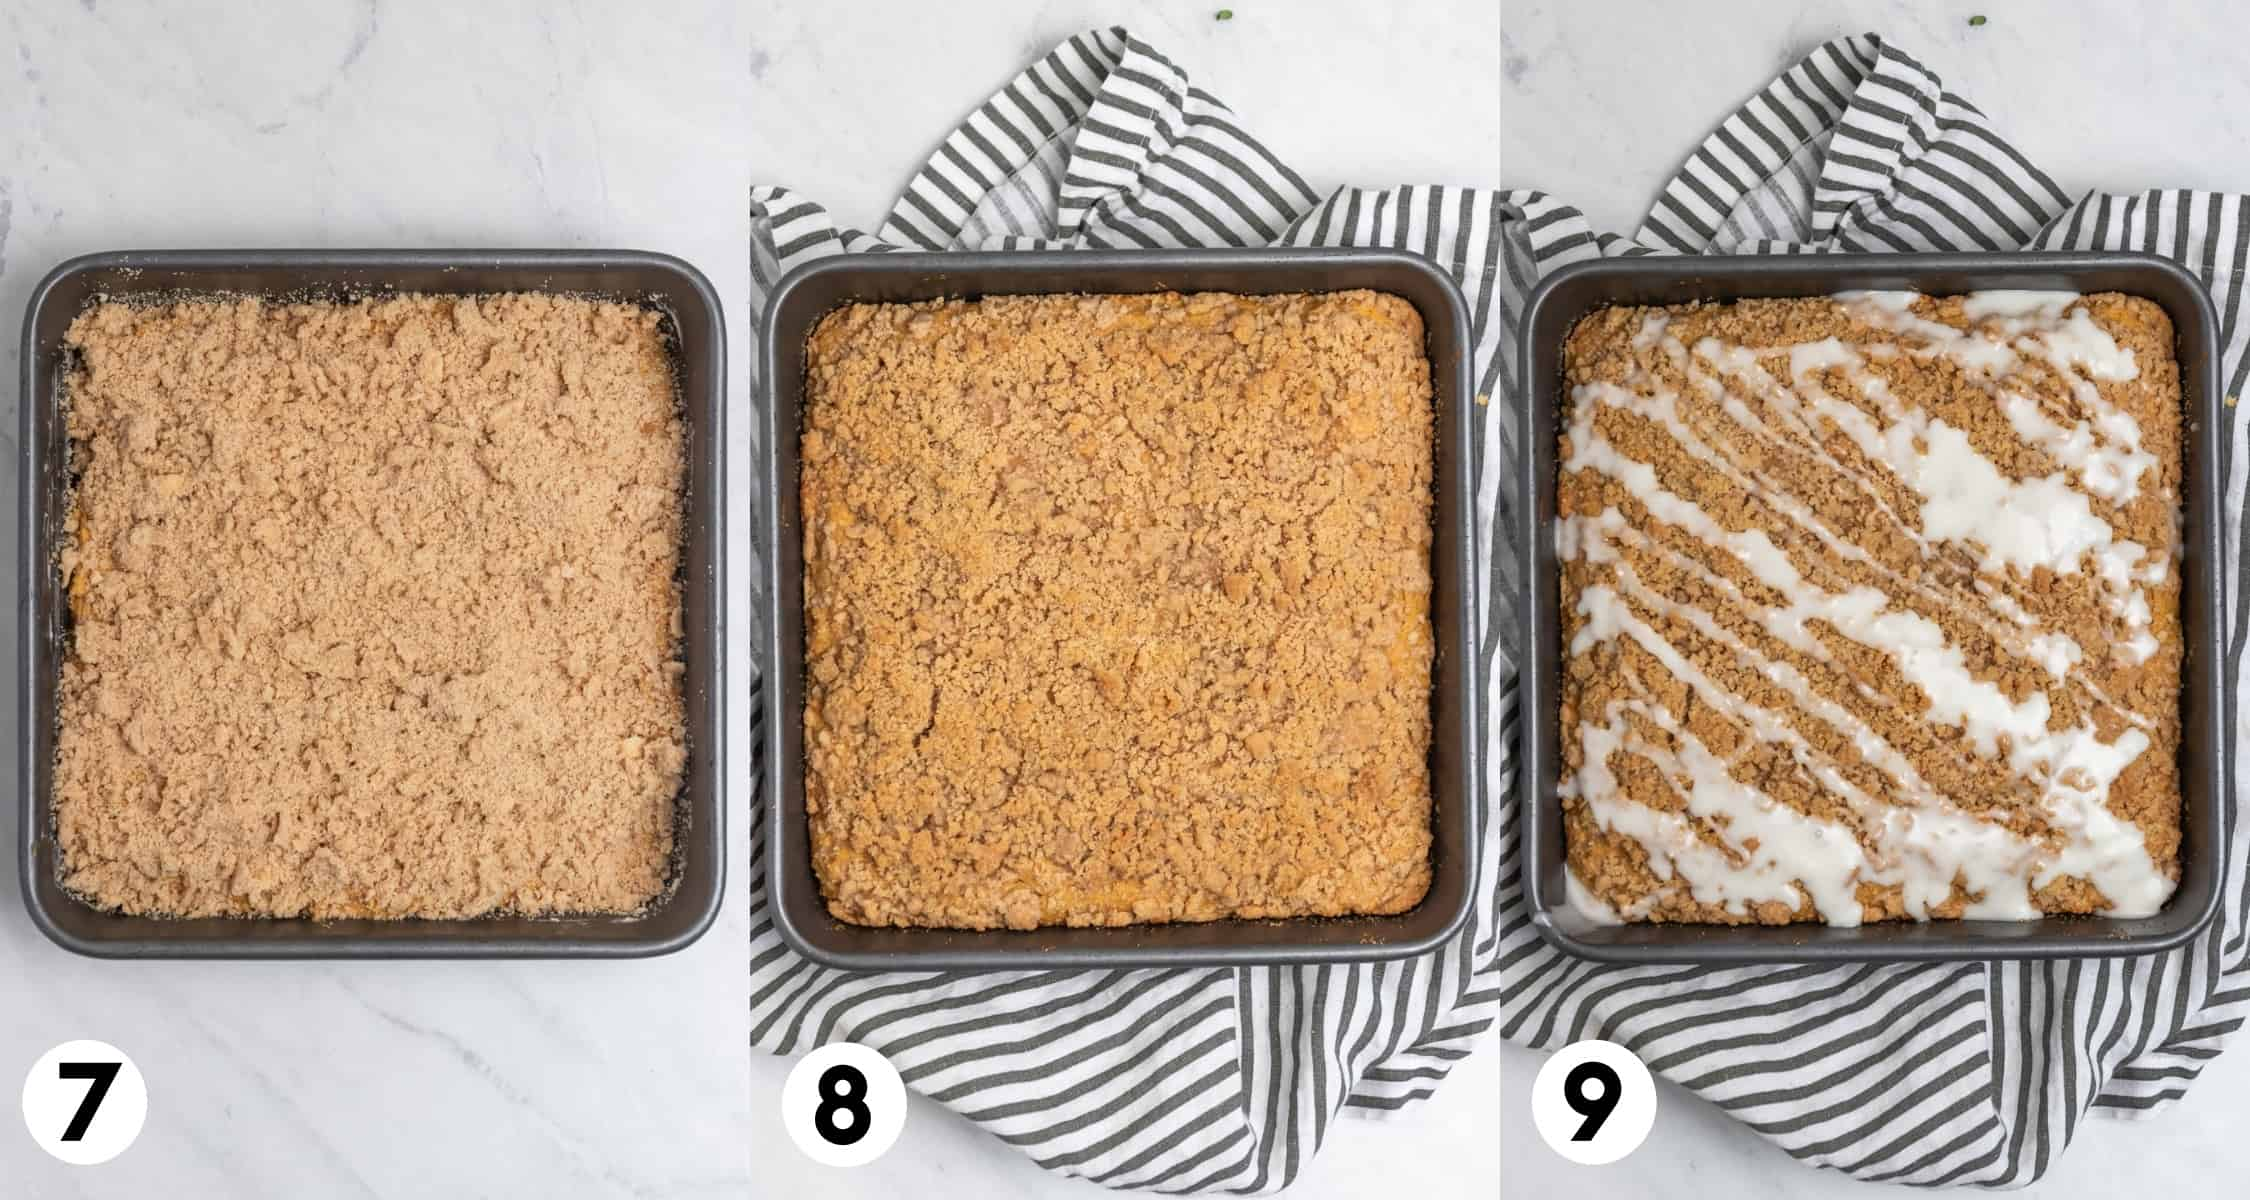 Streusel topping over cake in pan, baked coffee cake and then iced cake.